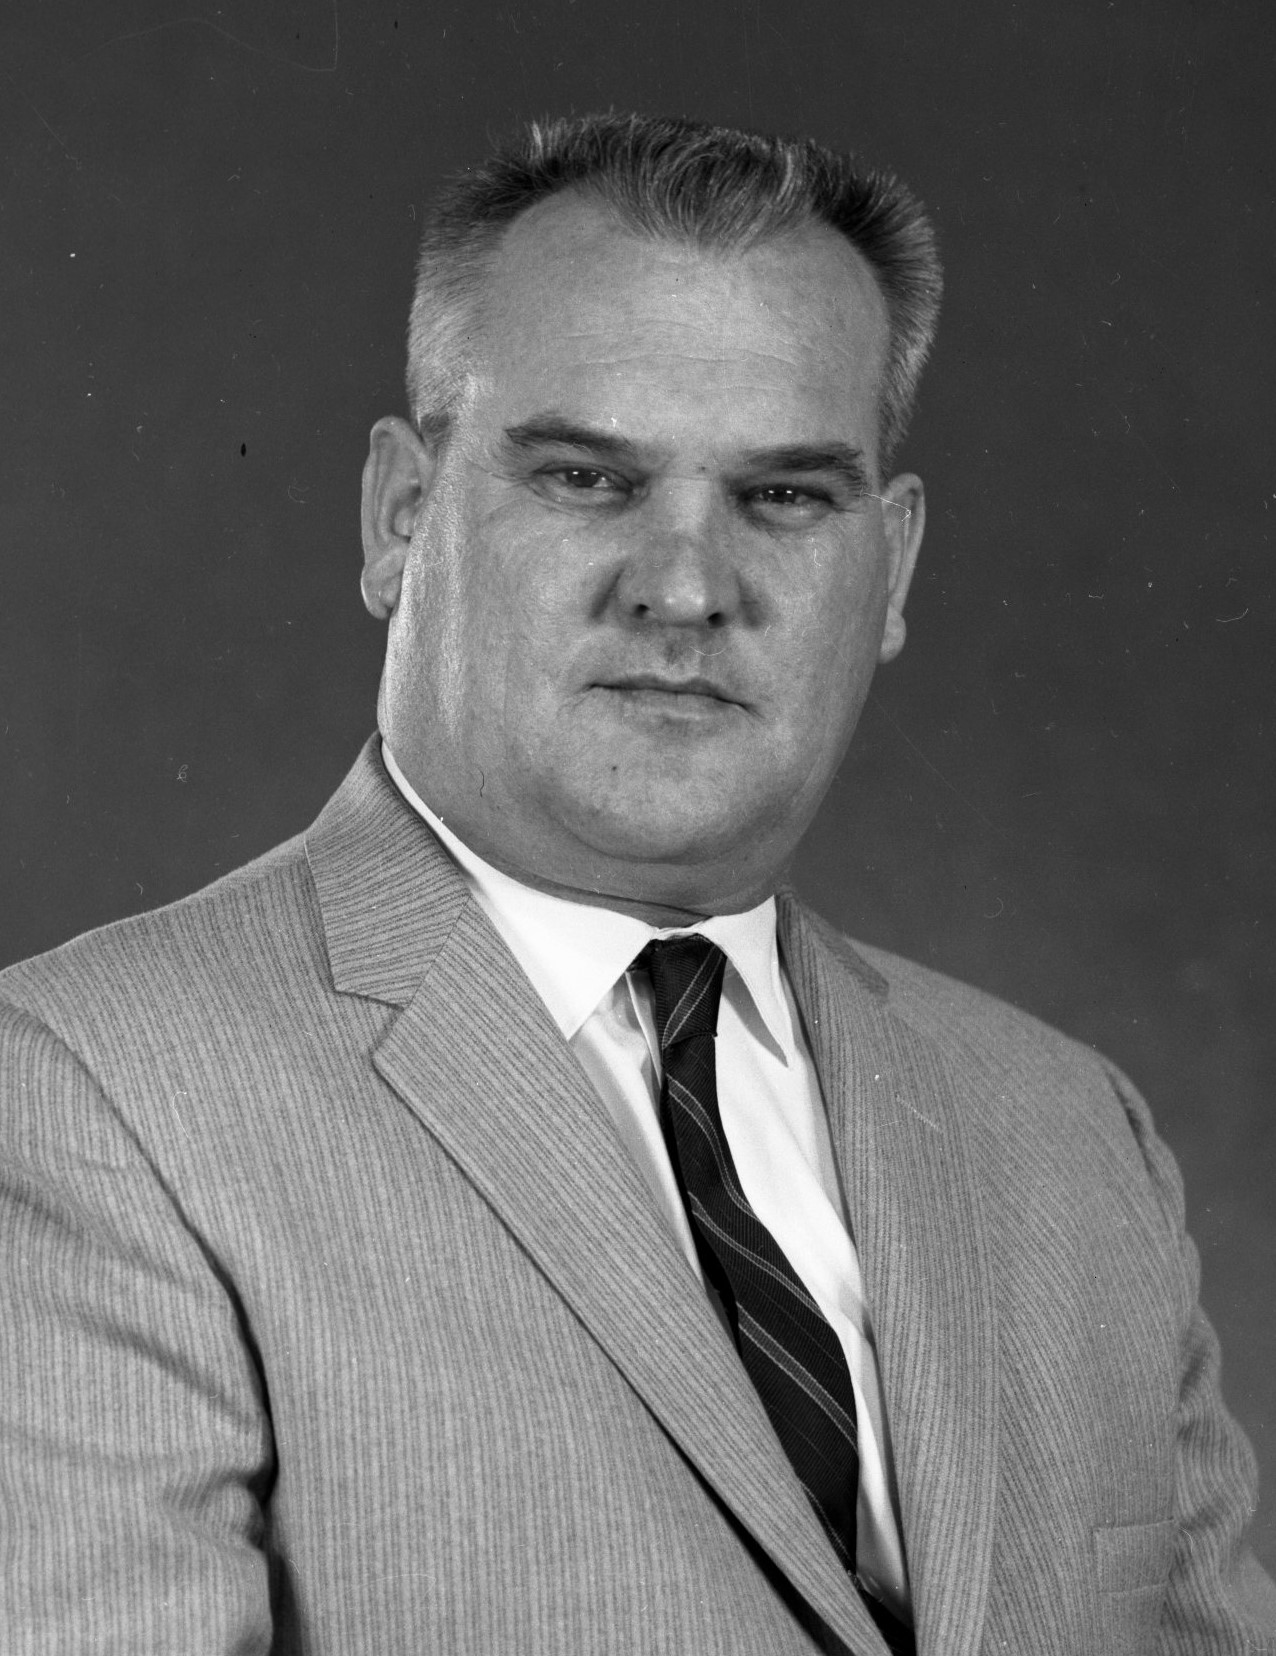 Detective Sergeant Joseph K. Siepak | Detroit Police Department, Michigan